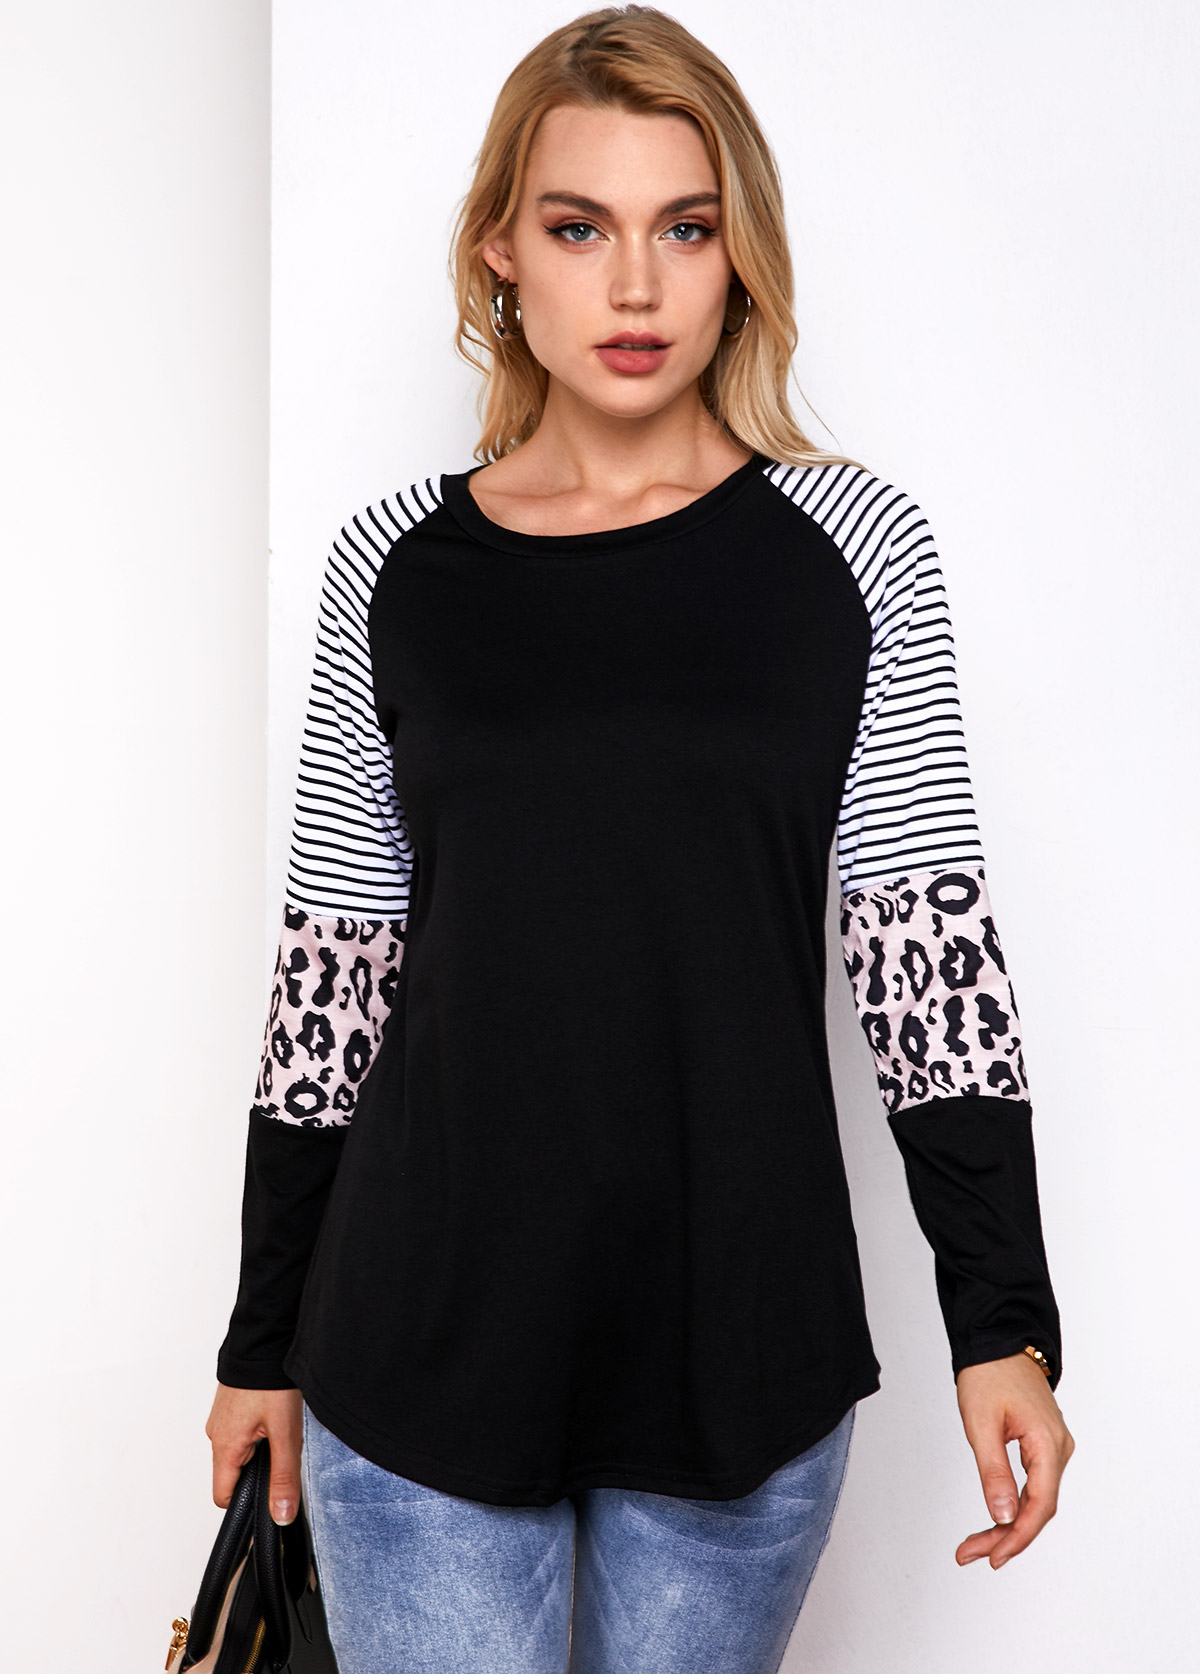 Stripe and Leopard Round Neck Long Sleeve T Shirt